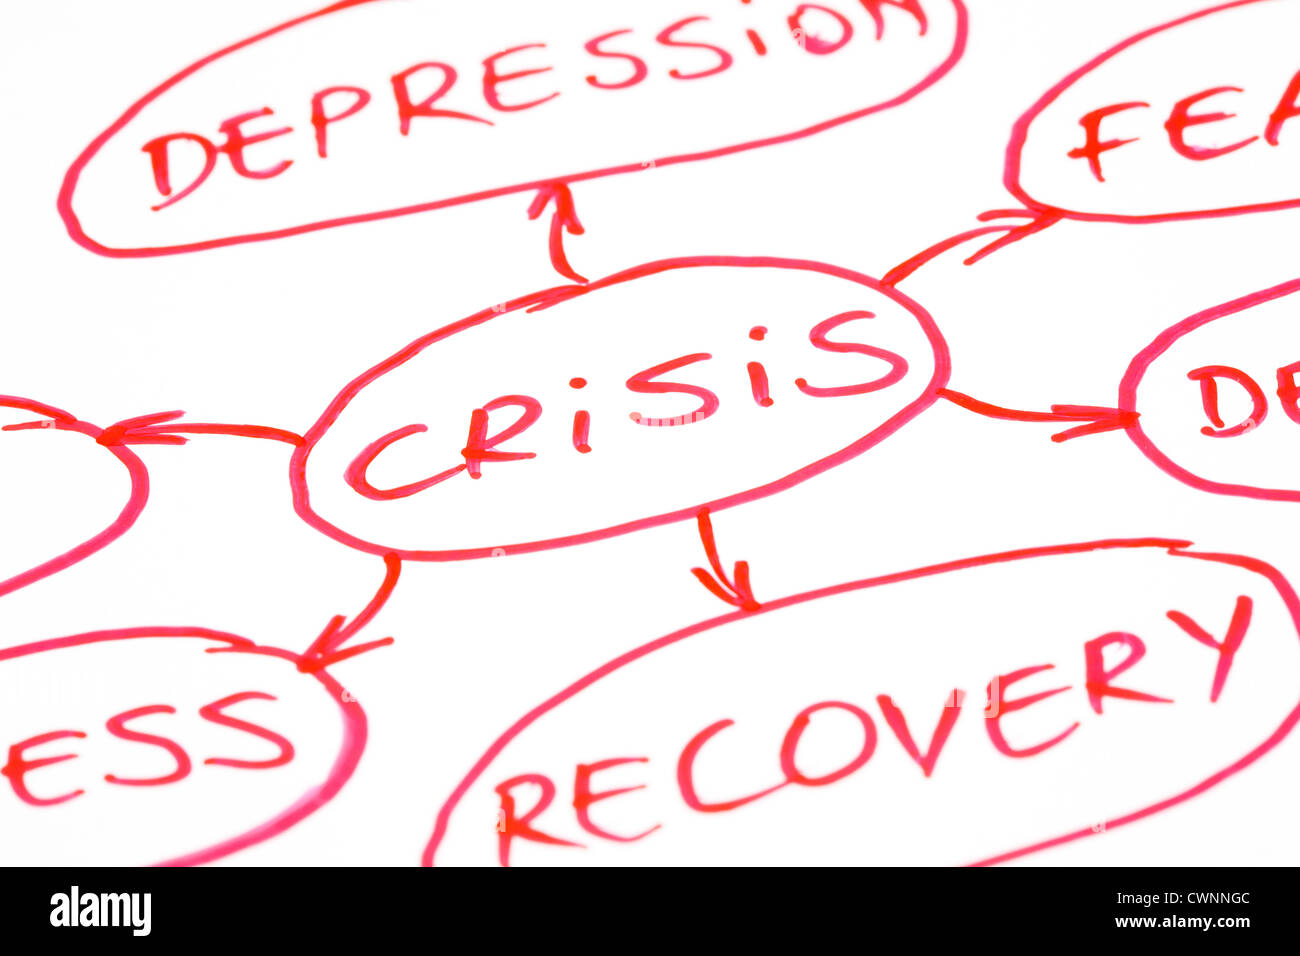 Crisis flow chart written with red pen on paper - Stock Image